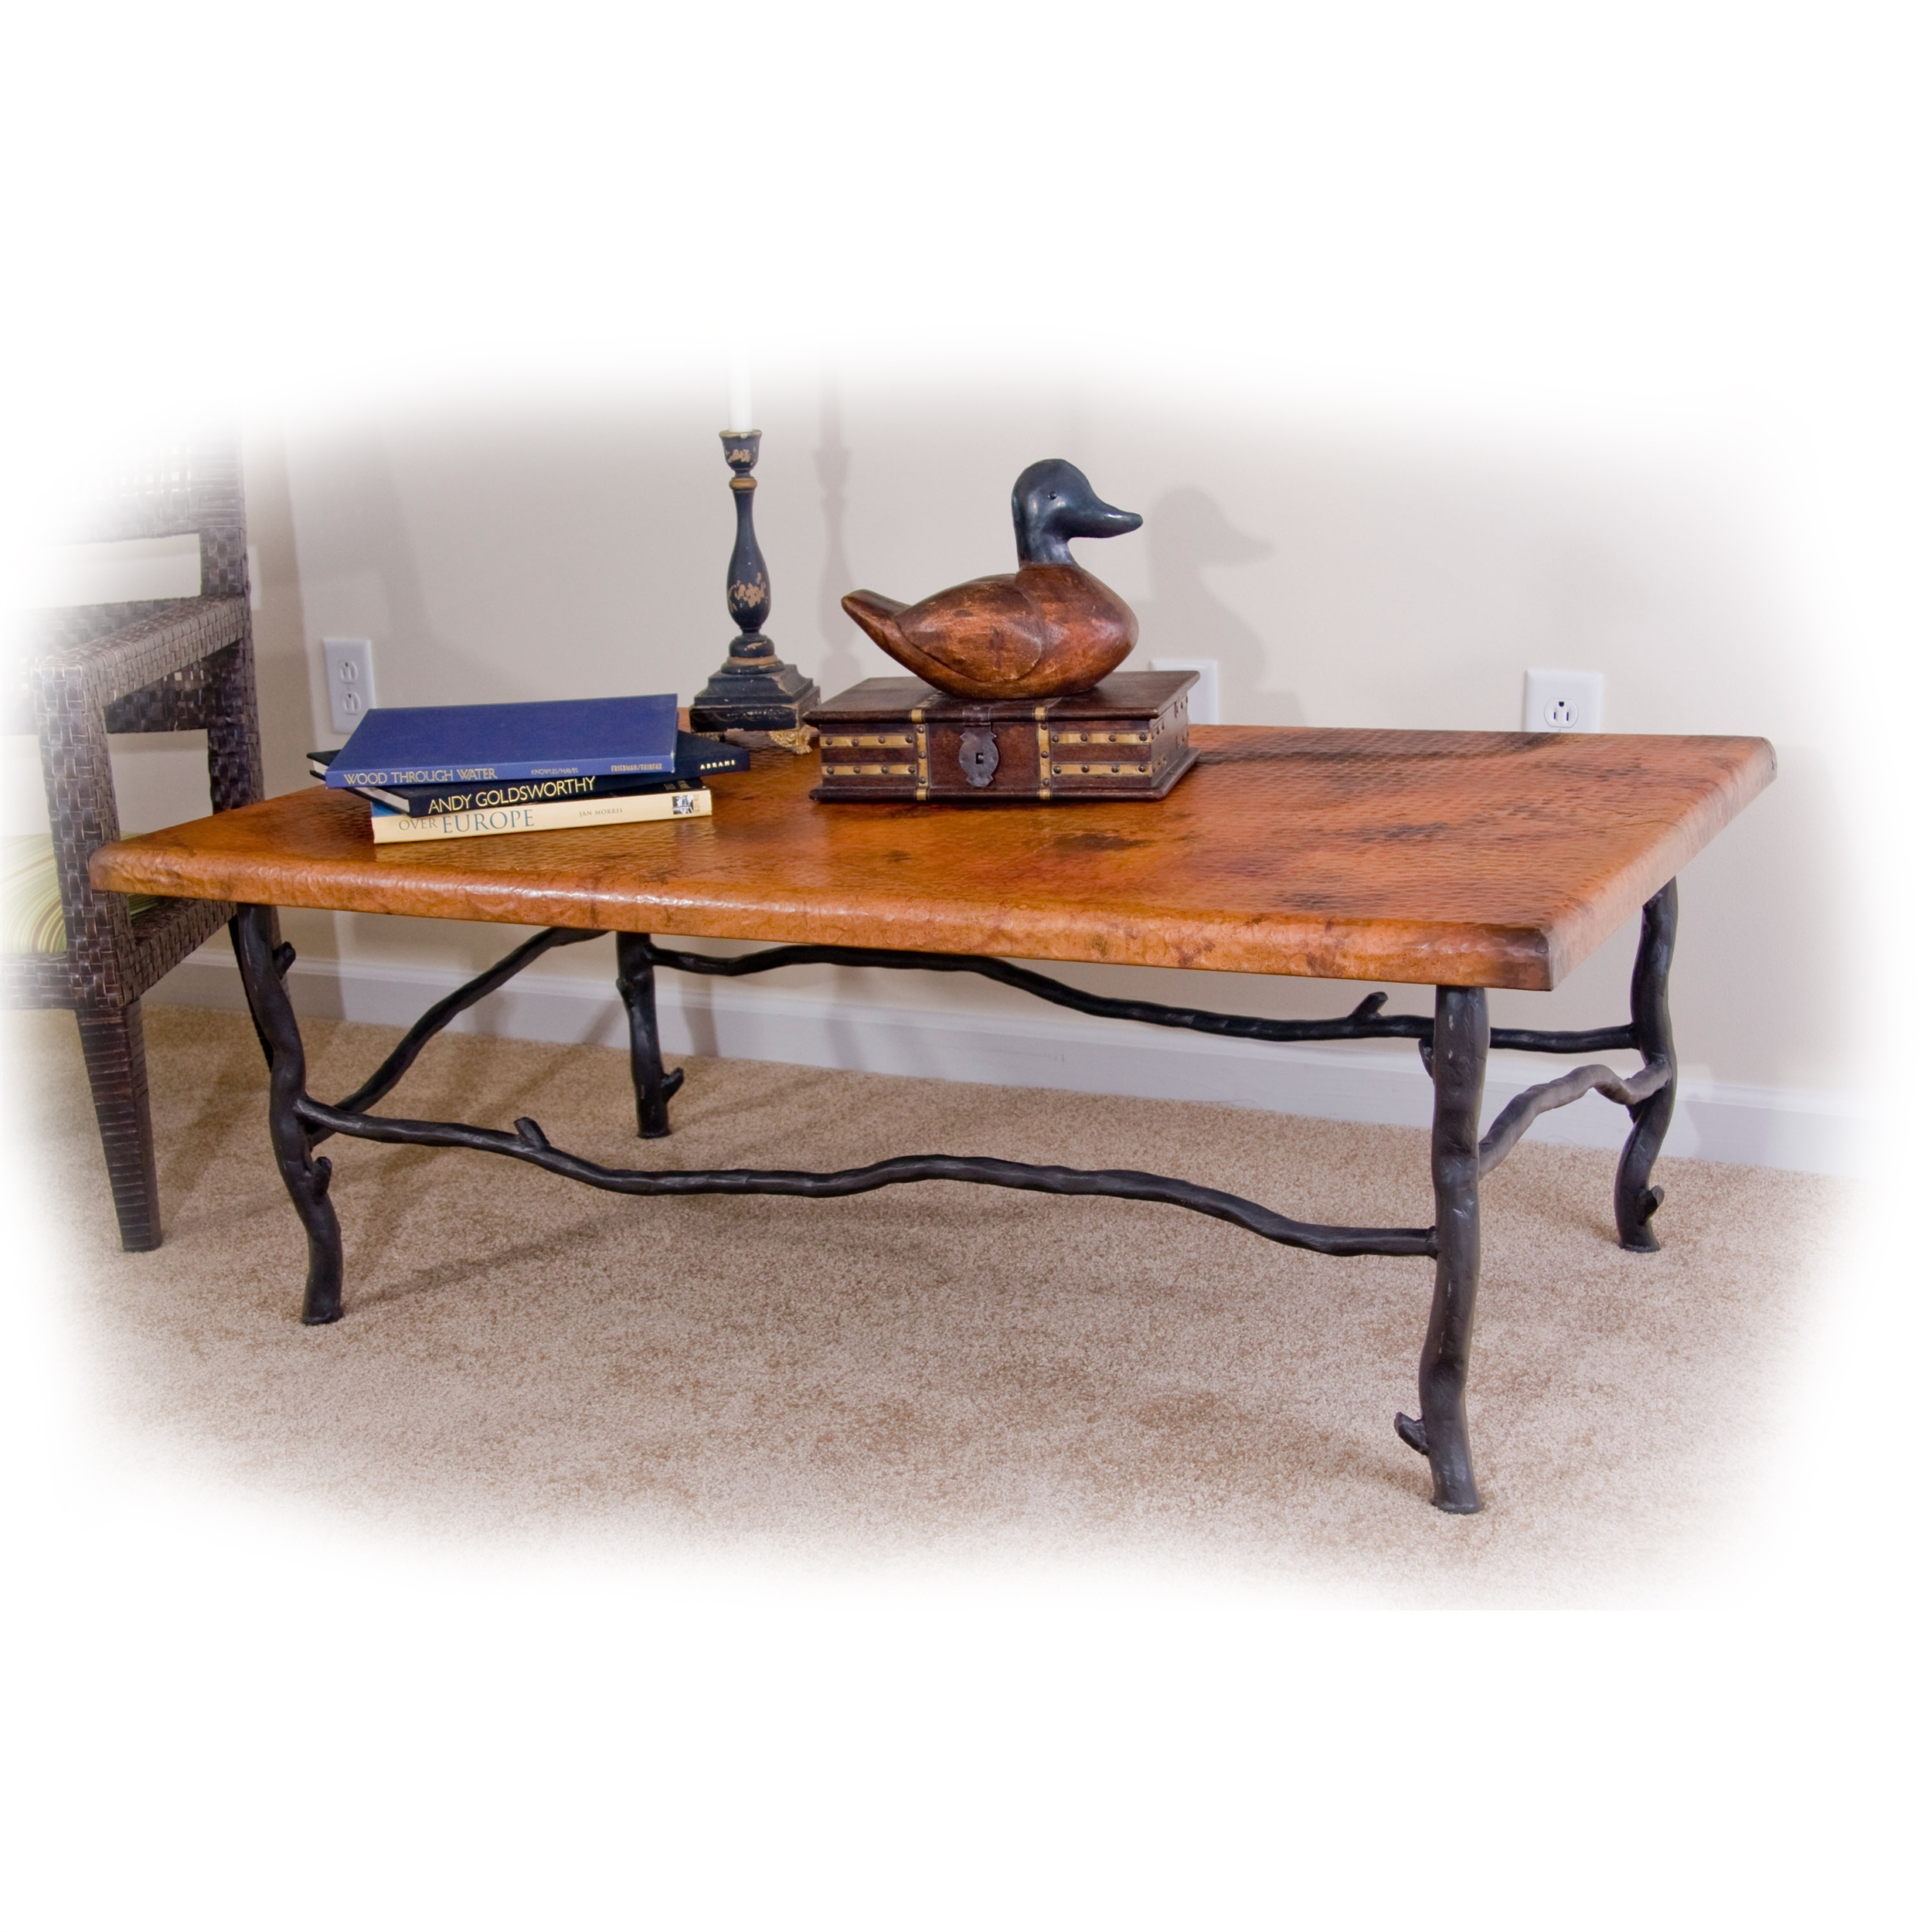 Black Coffee Table Sheffield: Rustic South Fork Cocktail Table